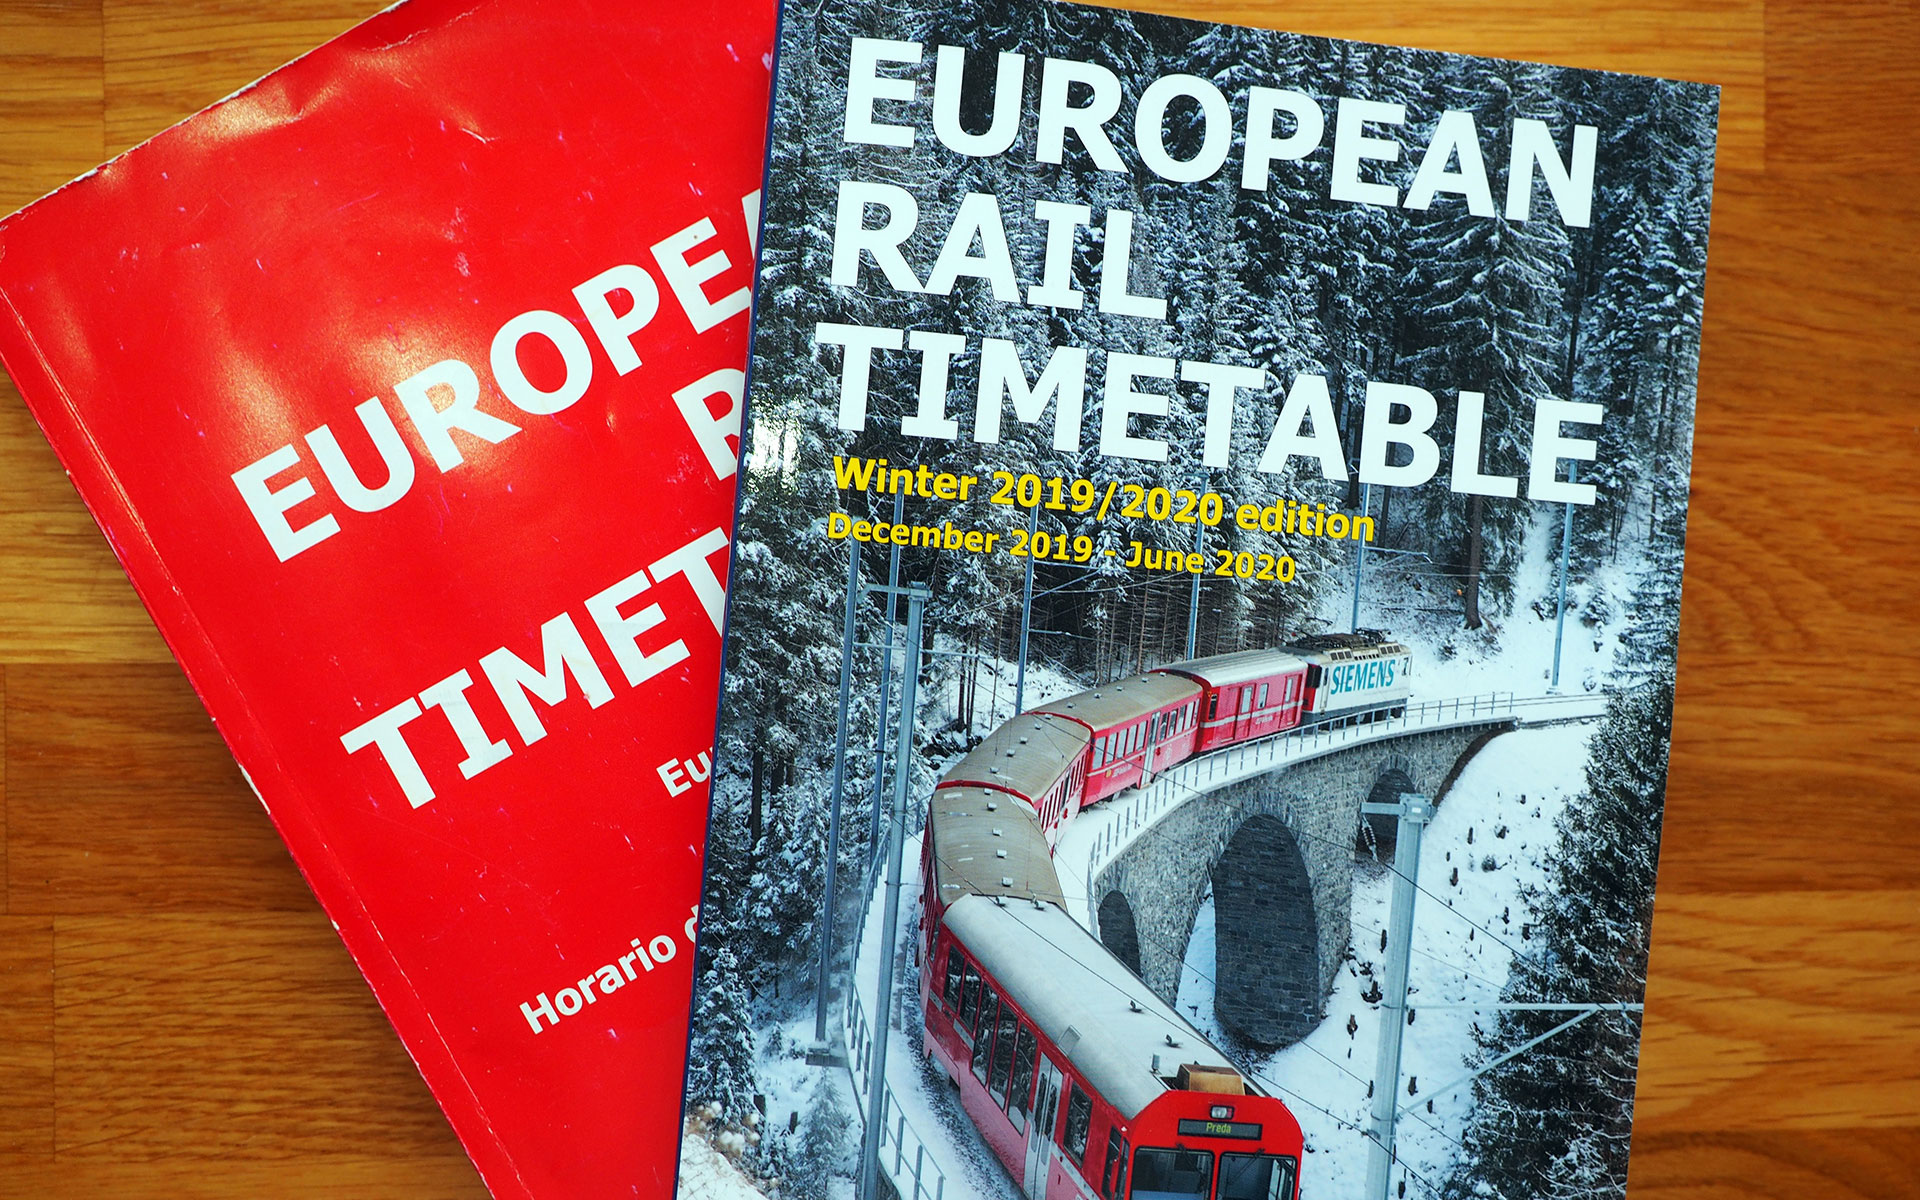 The winter 2019/2020 edition of the European Rail Timetable includes a number of tributes to Brendan Fox's long tenure as Editor of the publication.